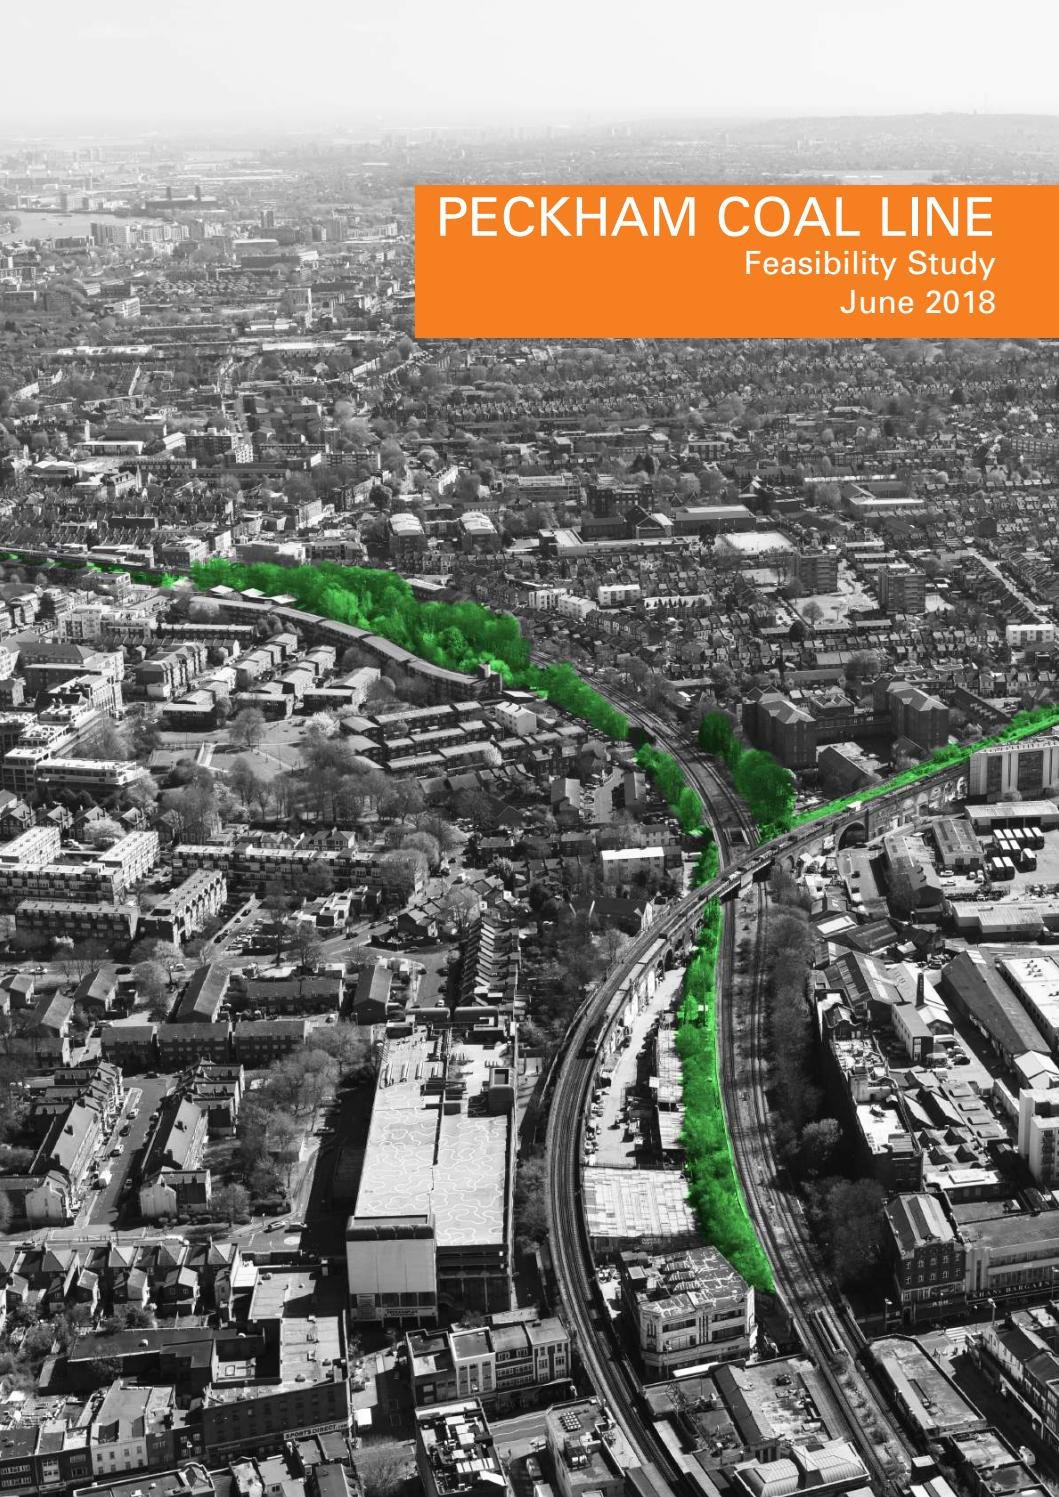 Peckham Coal Line feasibility study June 2018 by